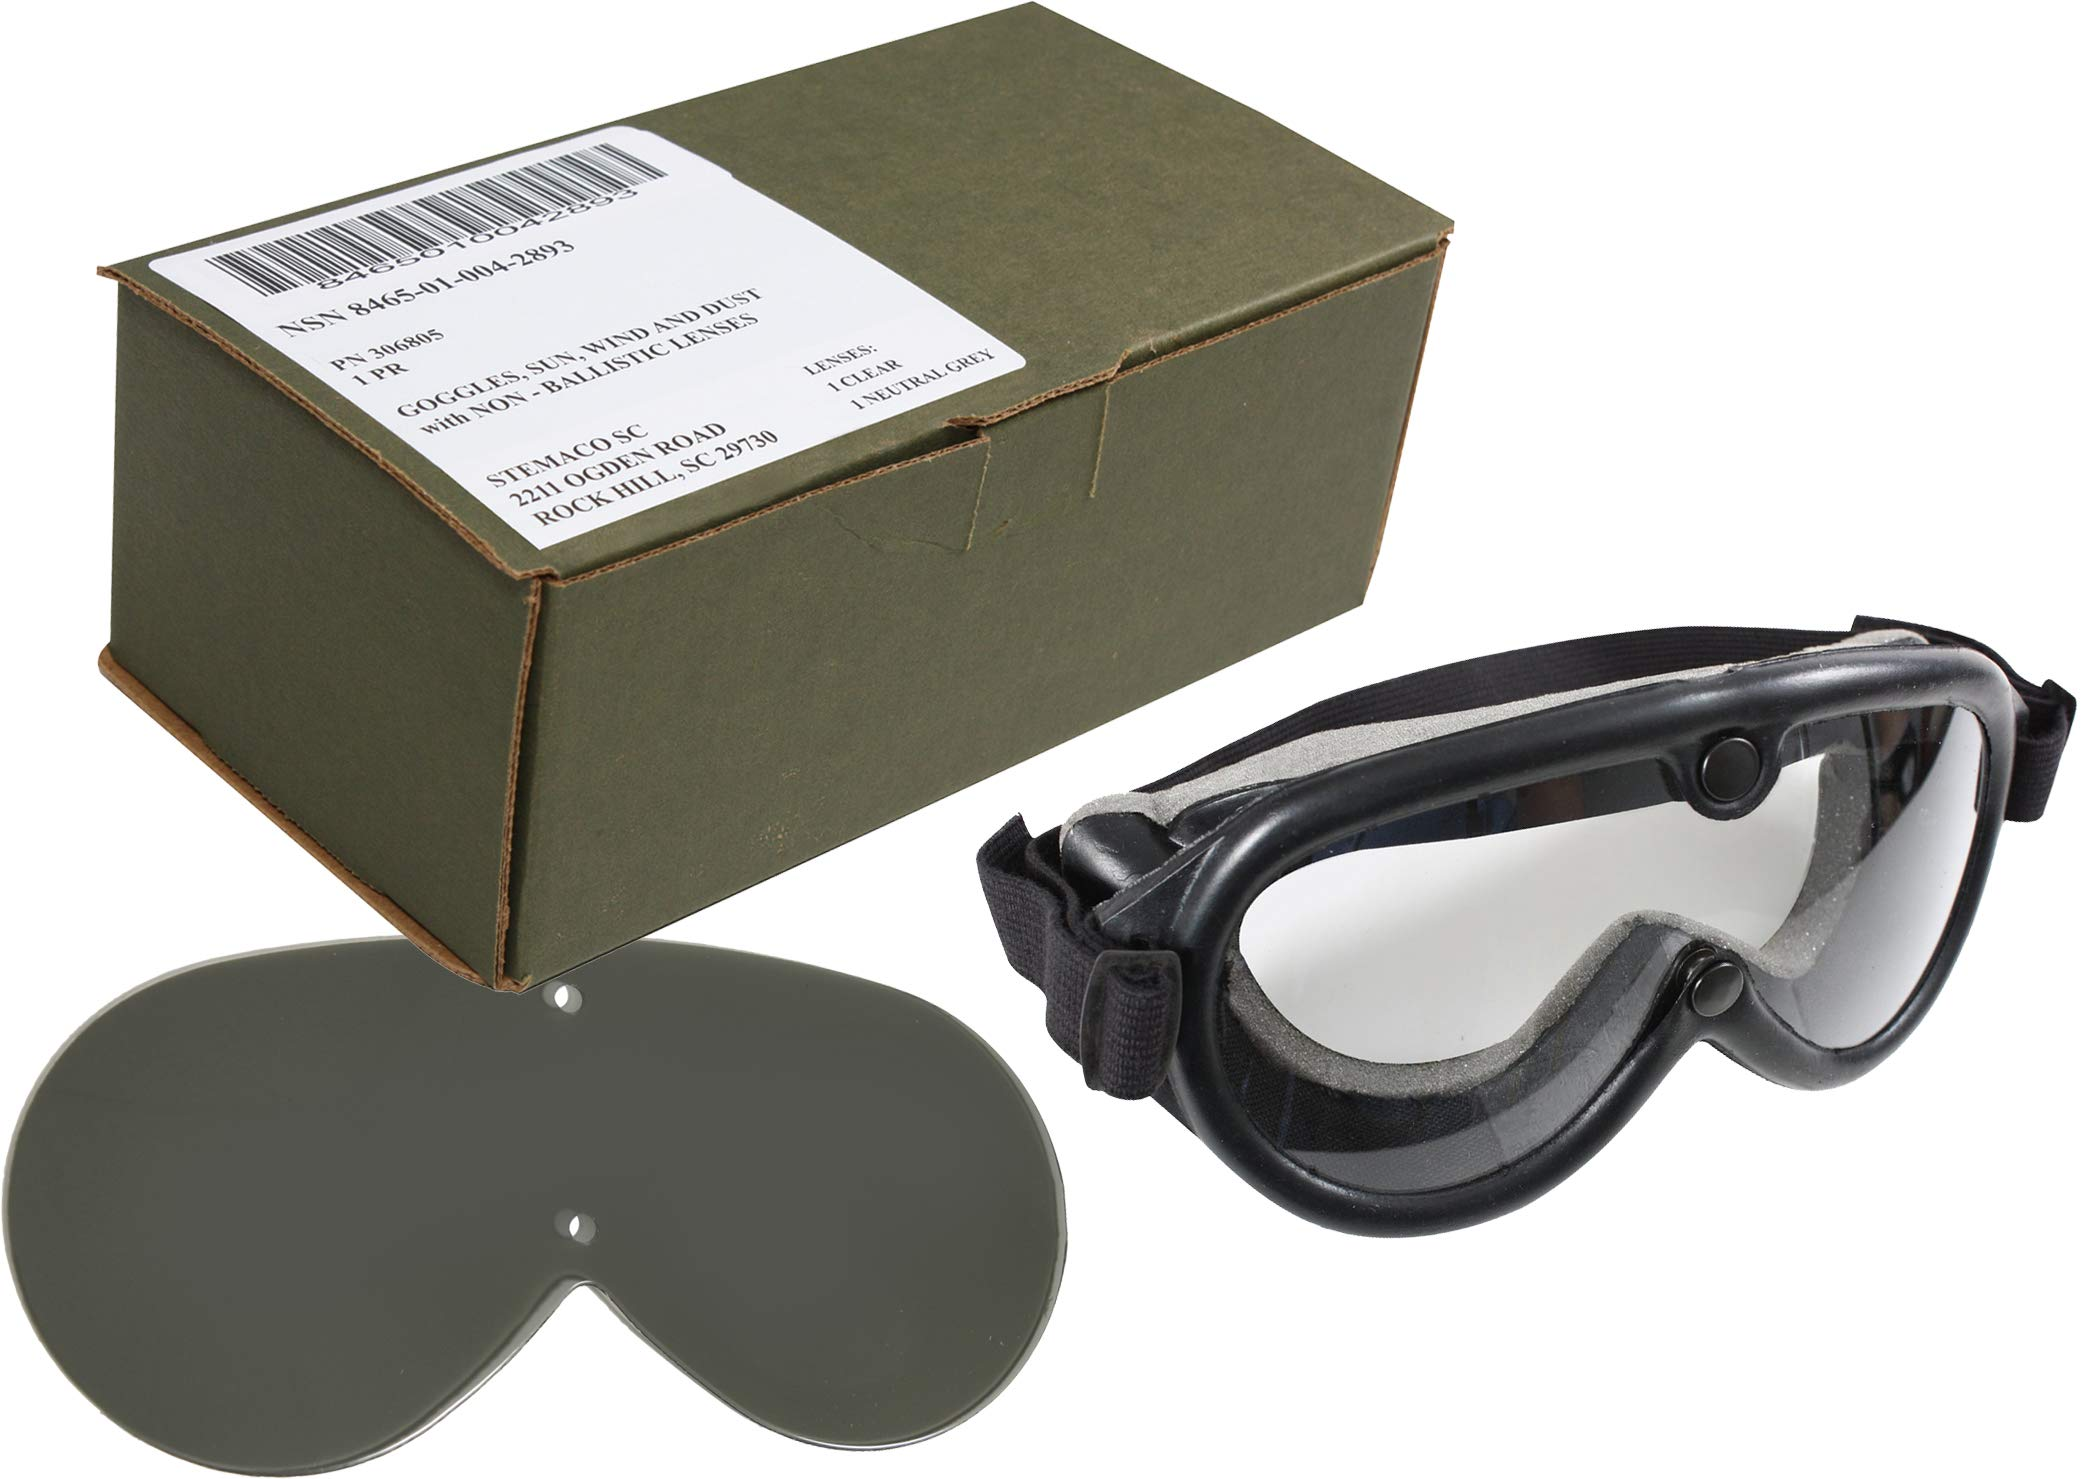 Genuine US Army GI Sun, Wind & Dust SWDG Military Goggles - Black with 2 Lenses Included (USA Made) by U.S. Military